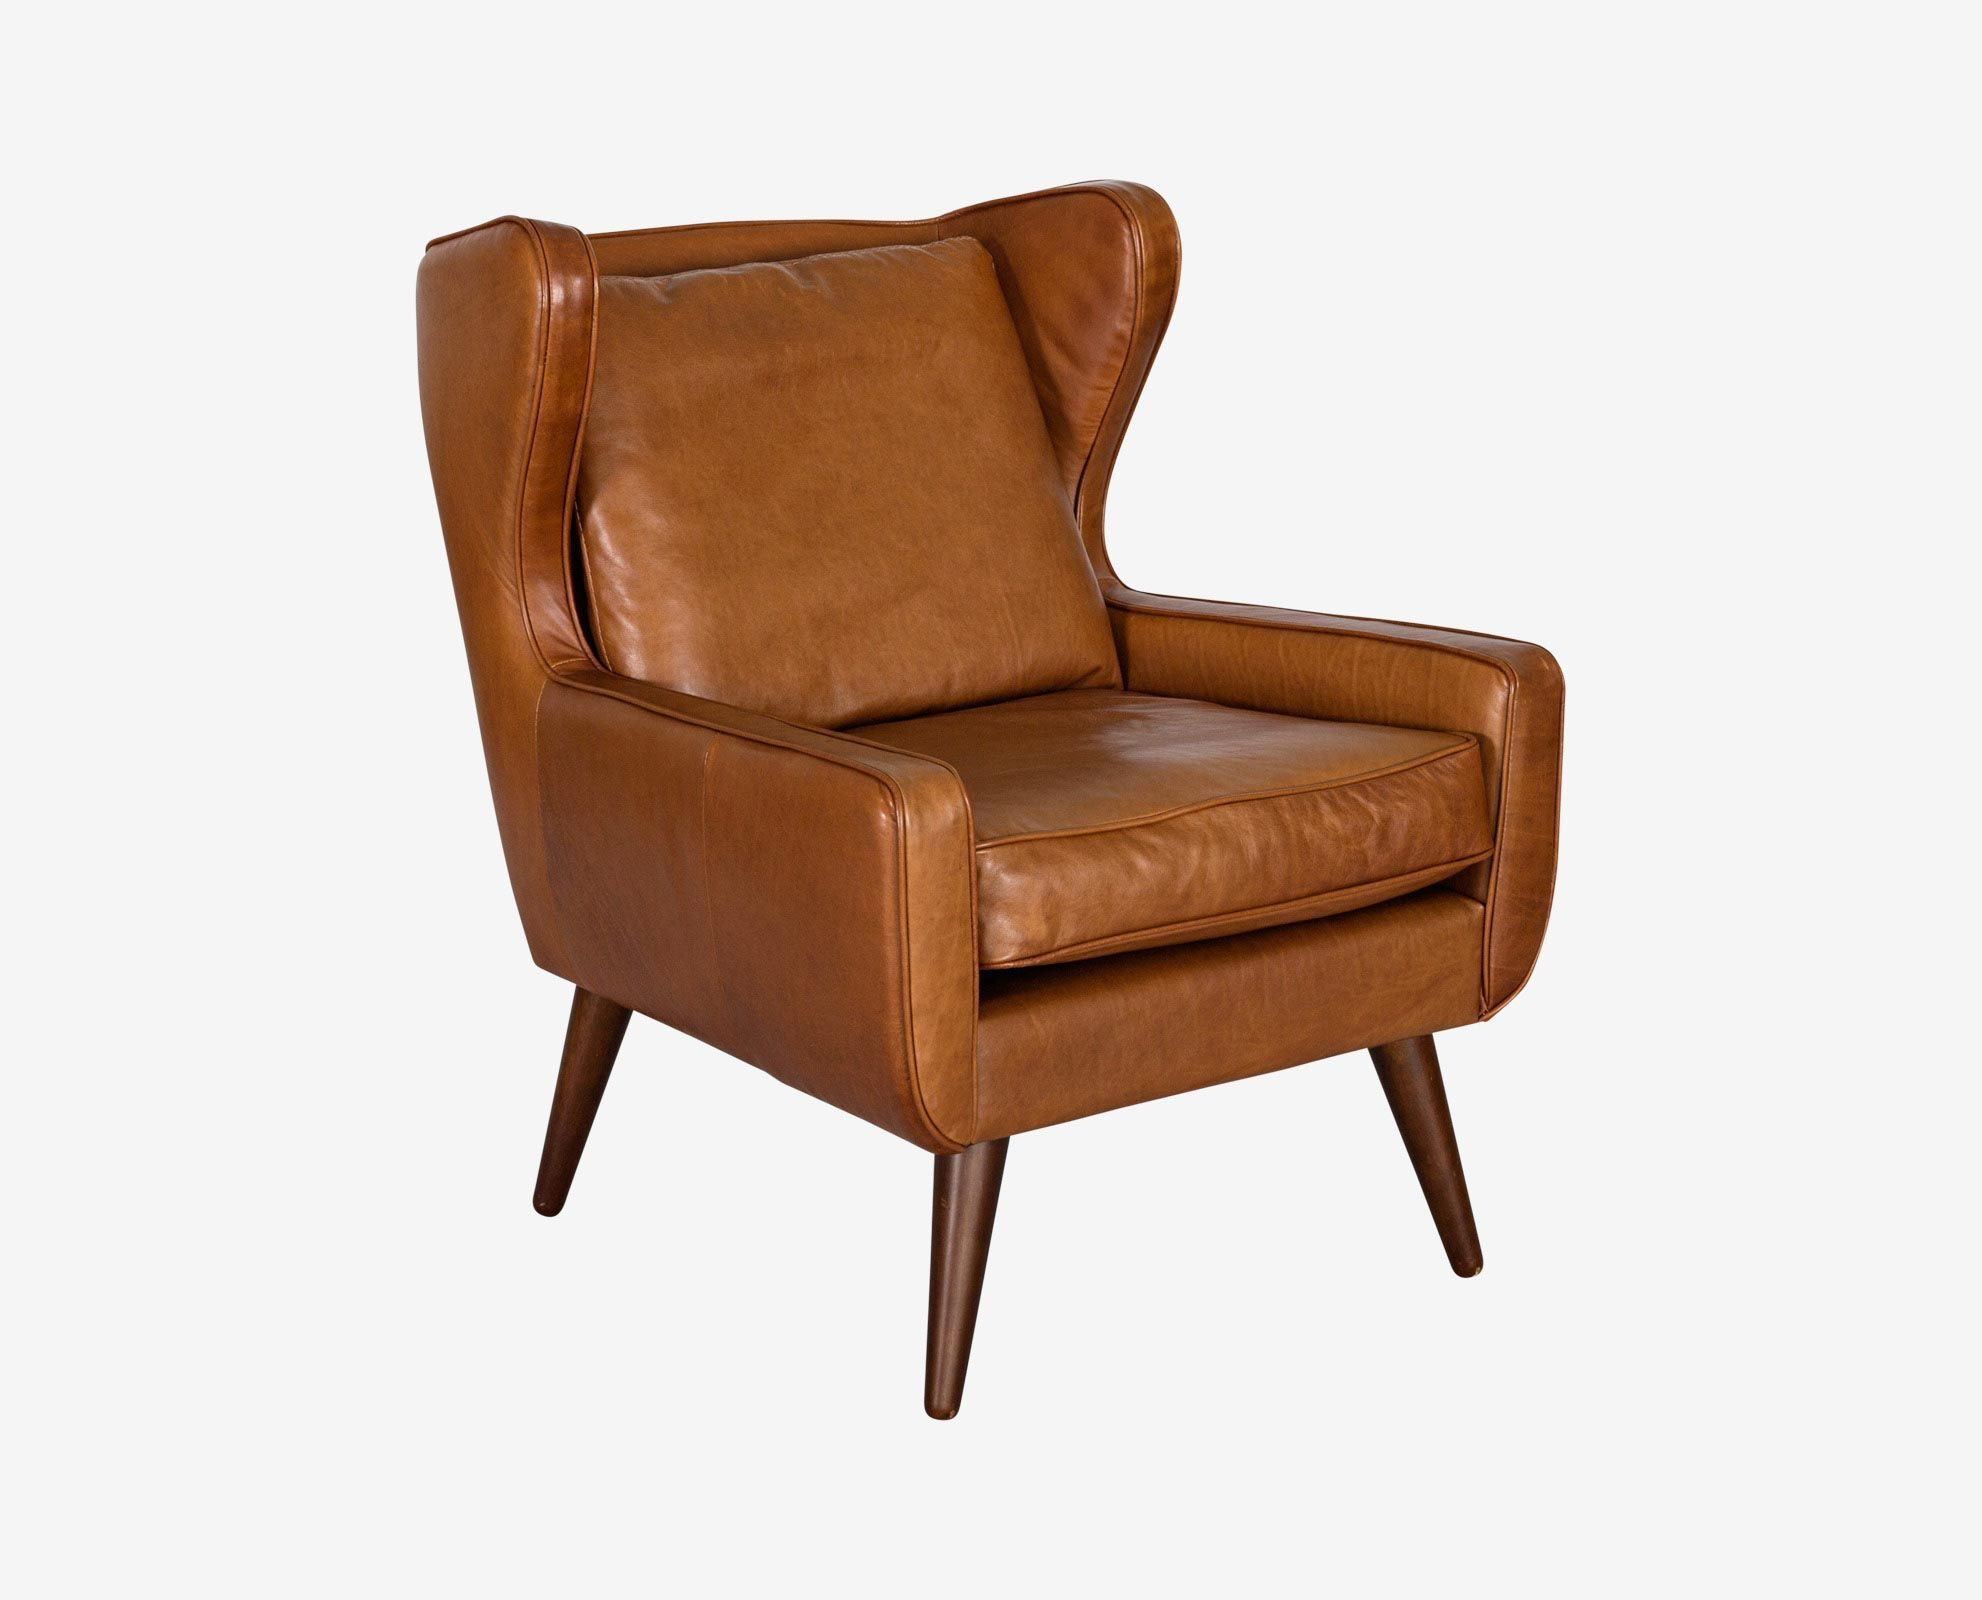 Scandinavian Designs - An updated take on the classic wingback chair, the  Giesen leather chair